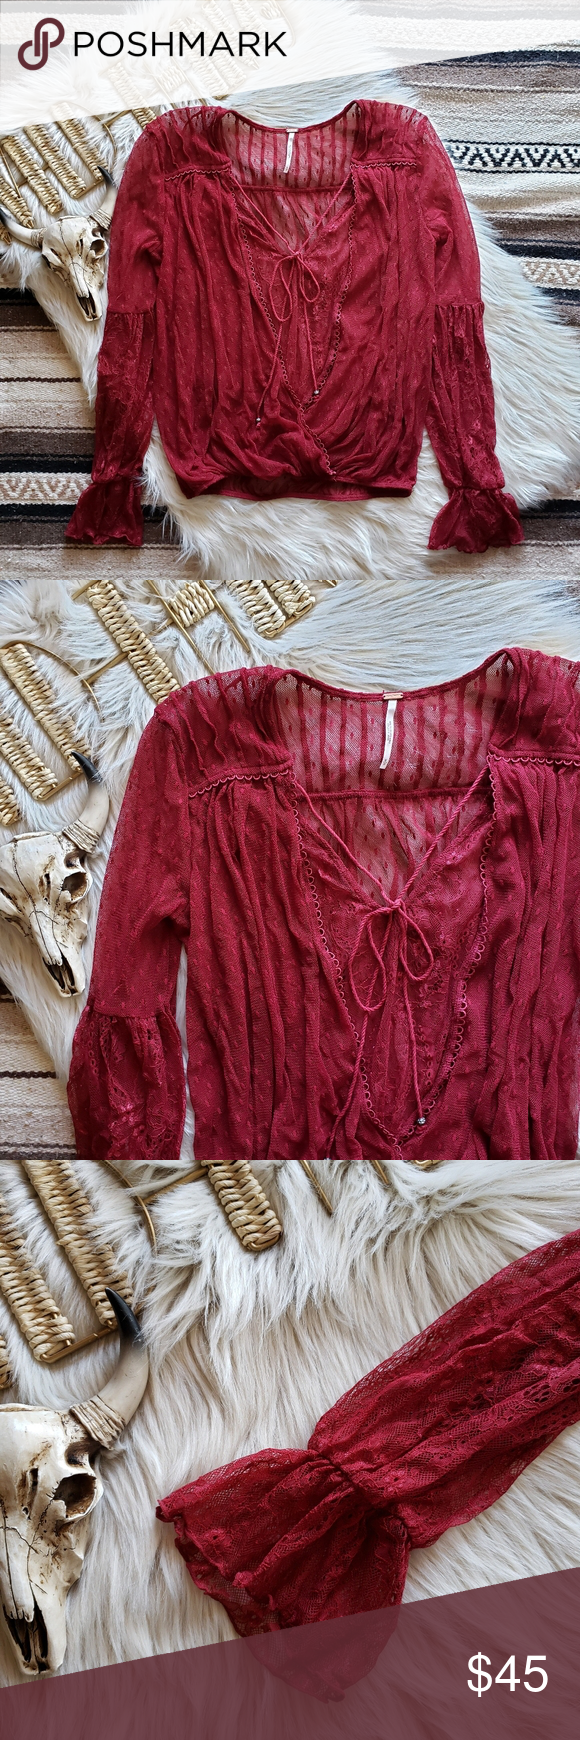 Free People Far Away Lace Wrap Top in 2020 Lace wrap